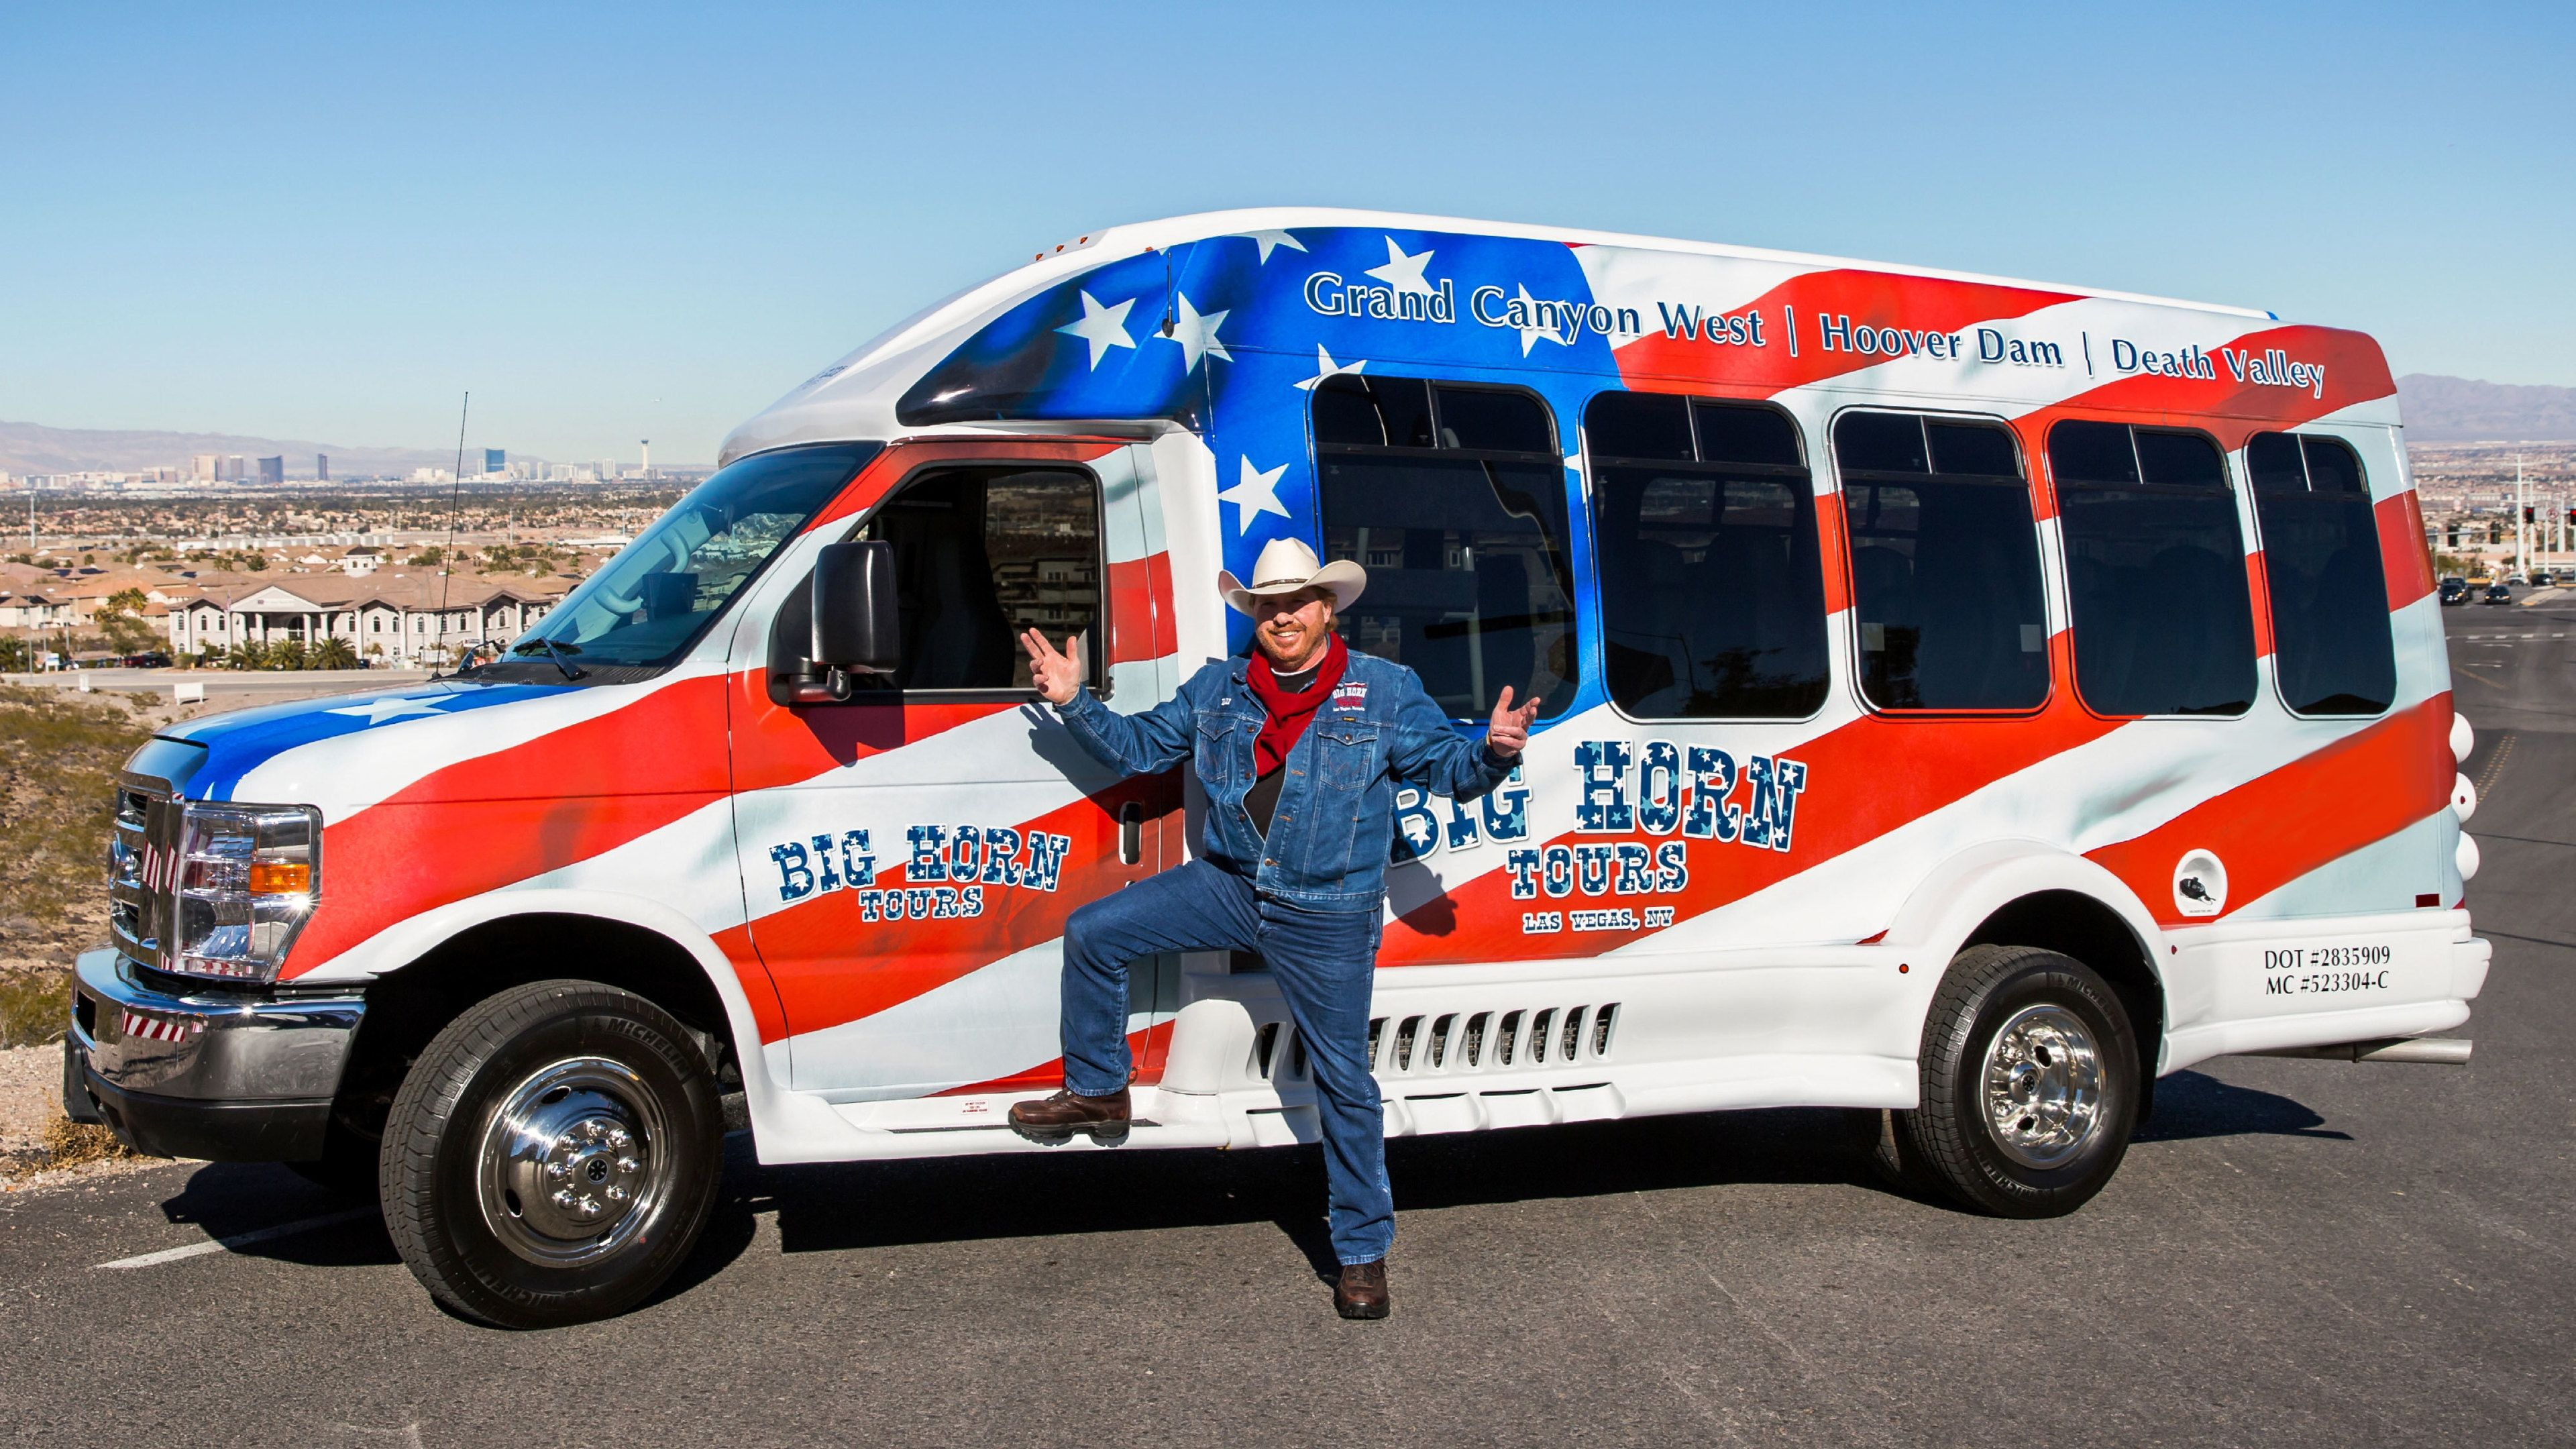 Tour guide in front of American Flag-inspired Van at the Grand Canyon